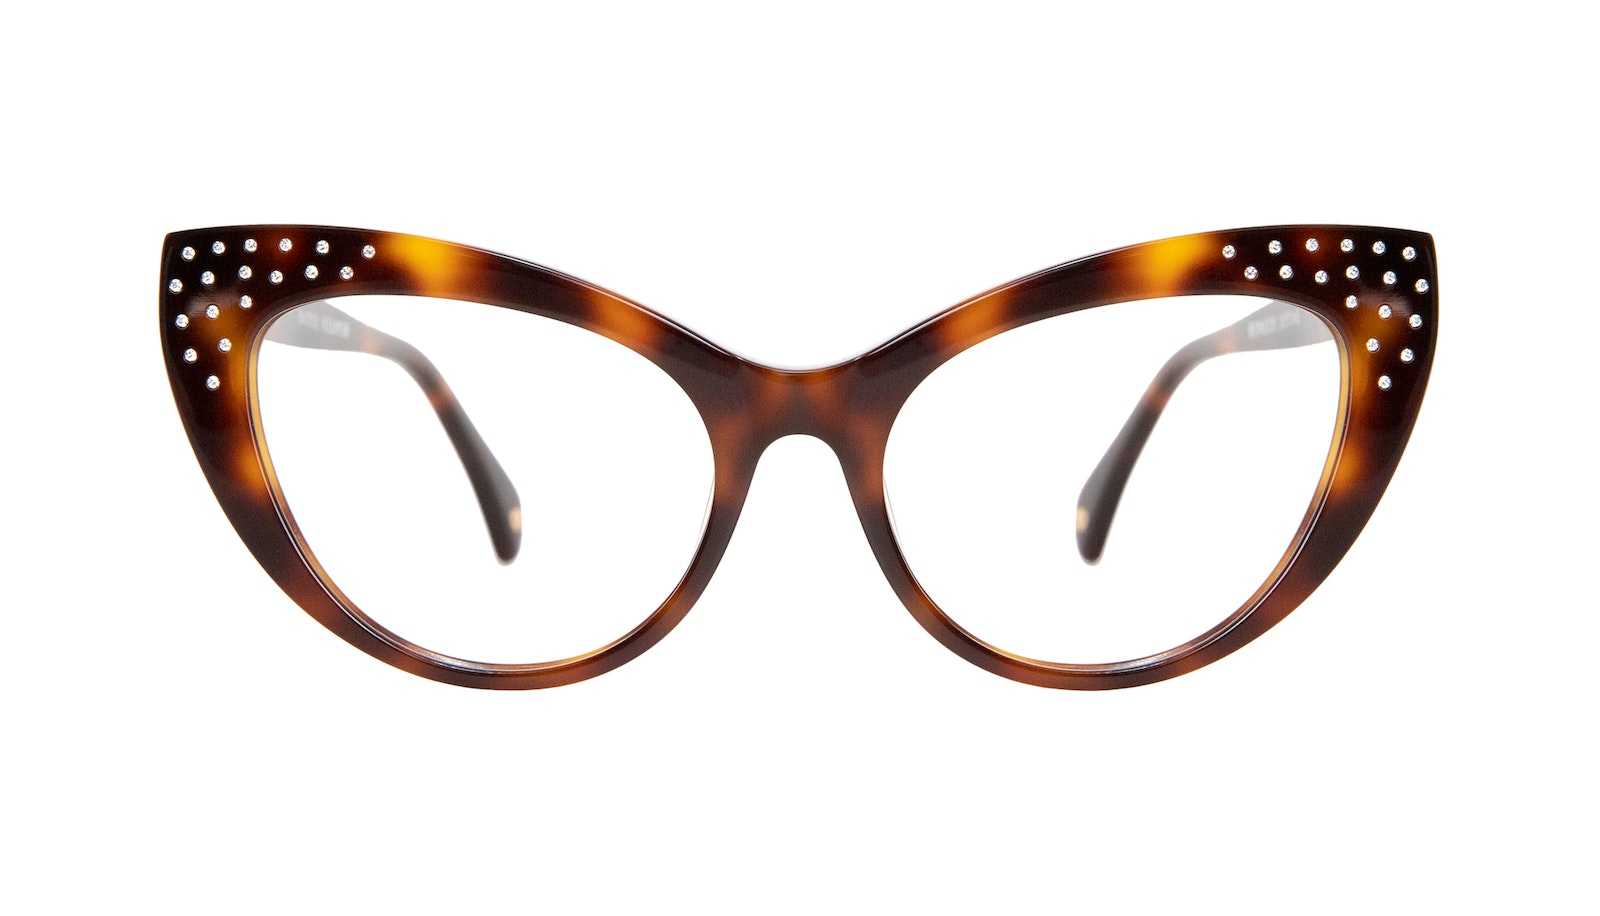 Affordable Fashion Glasses Cat Eye Daring Cateye Eyeglasses Women Keiko Nicole Brunette